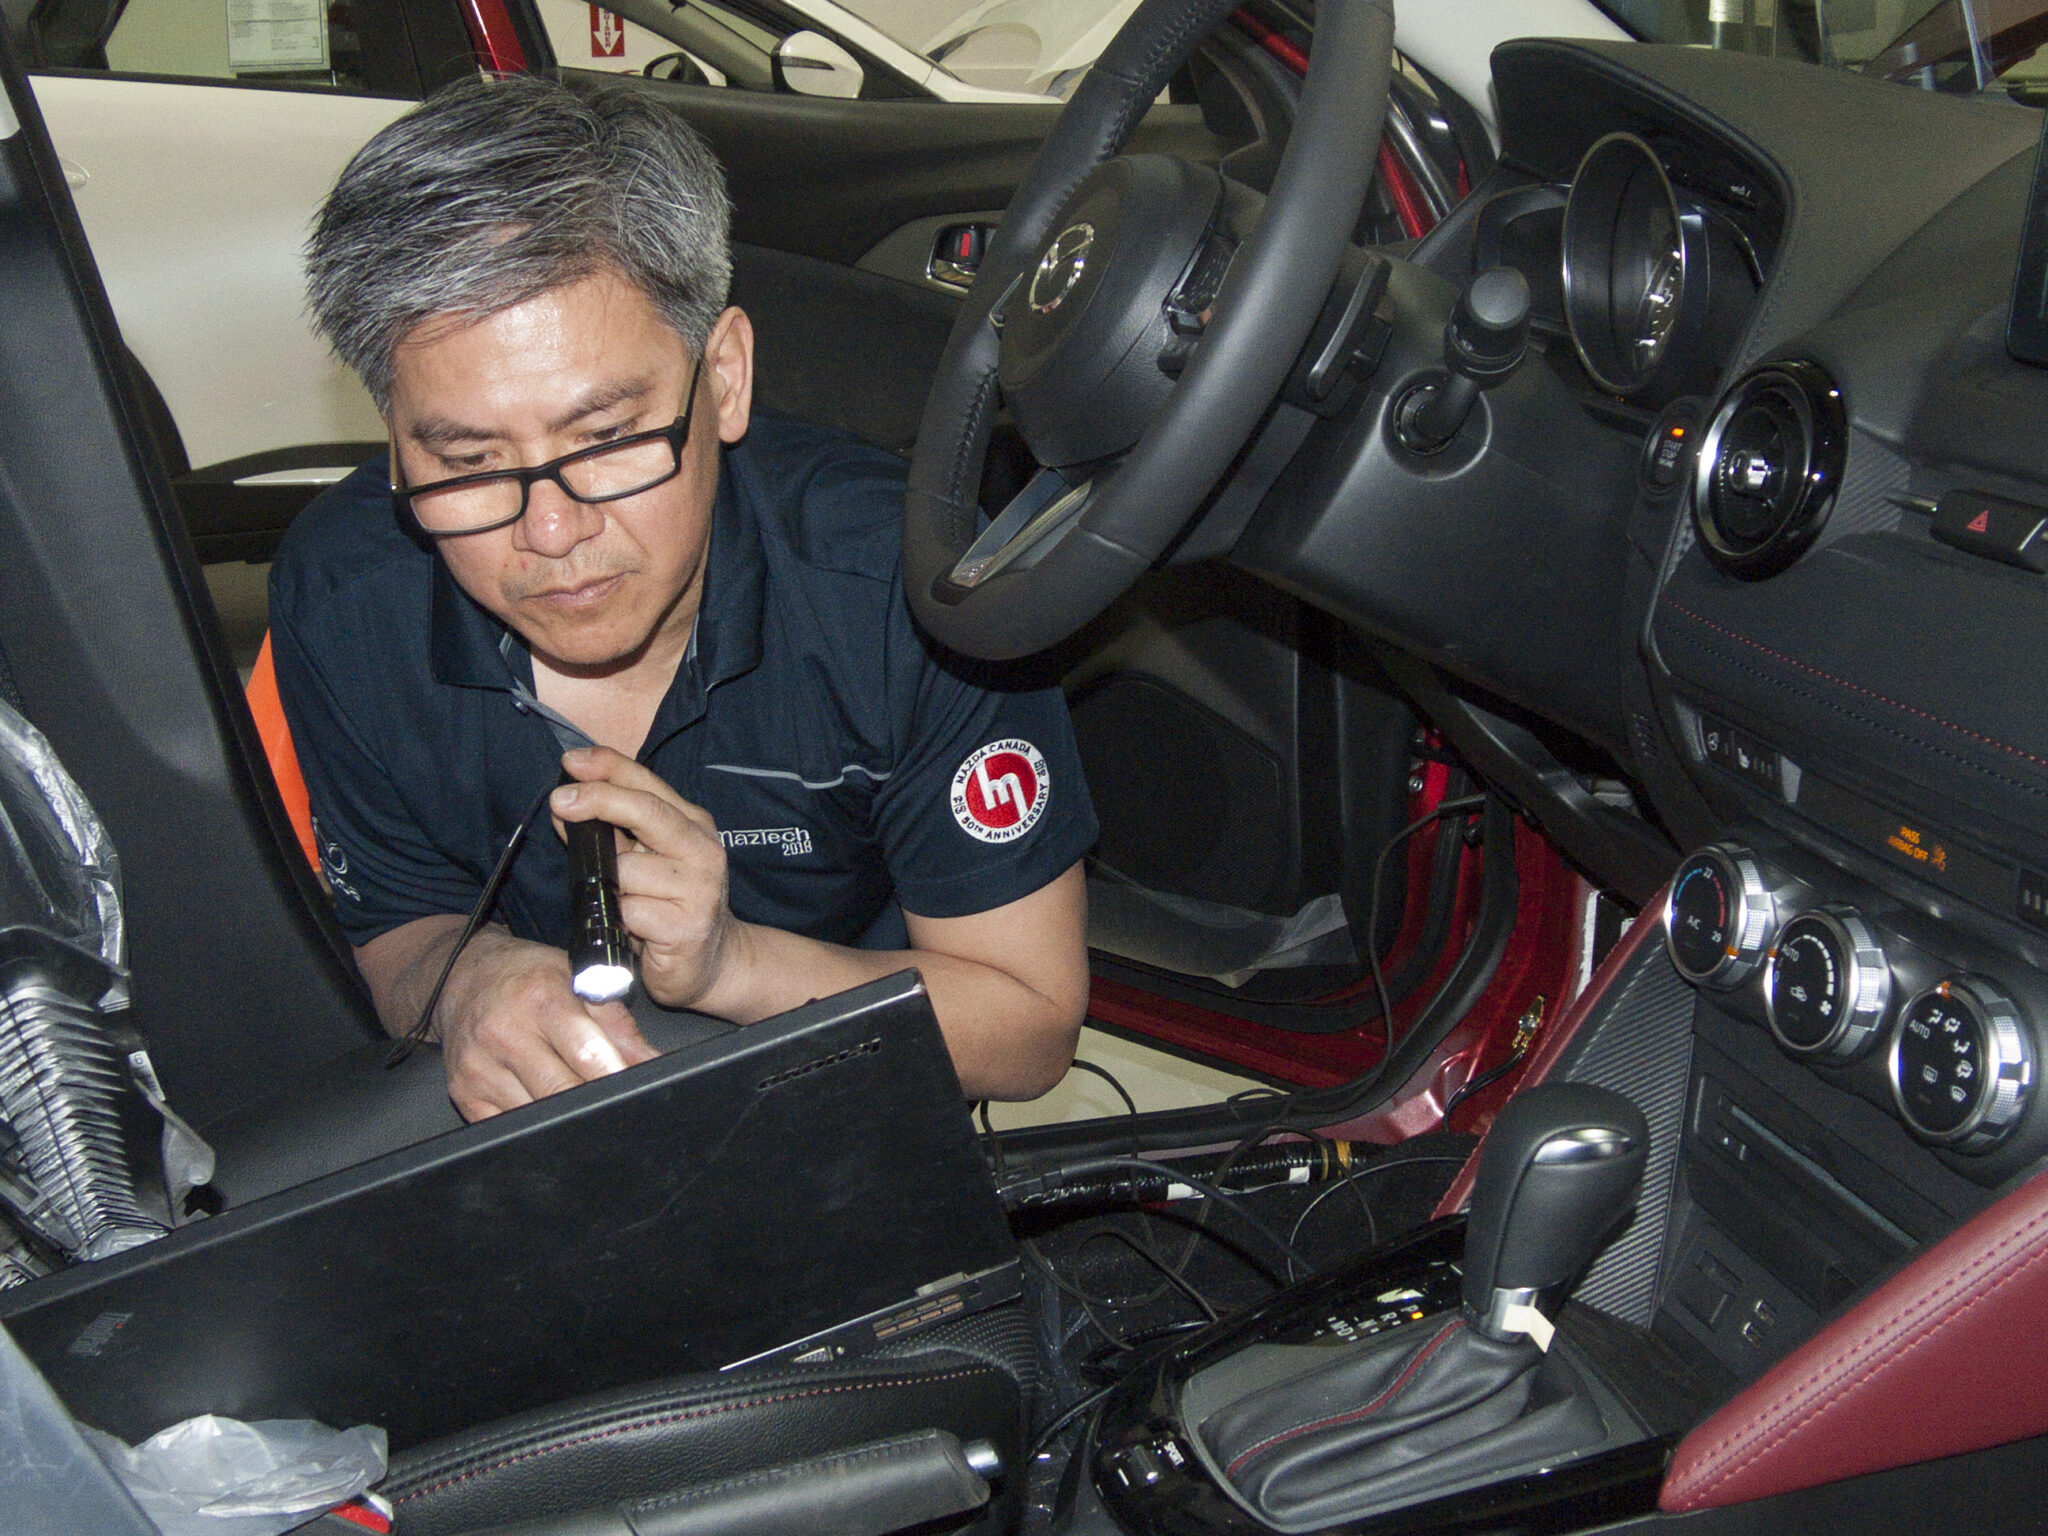 Perry Phuong diagnoses a vehicle at the 2018 Canadian MazTech Service Skills Competition in Toronto.